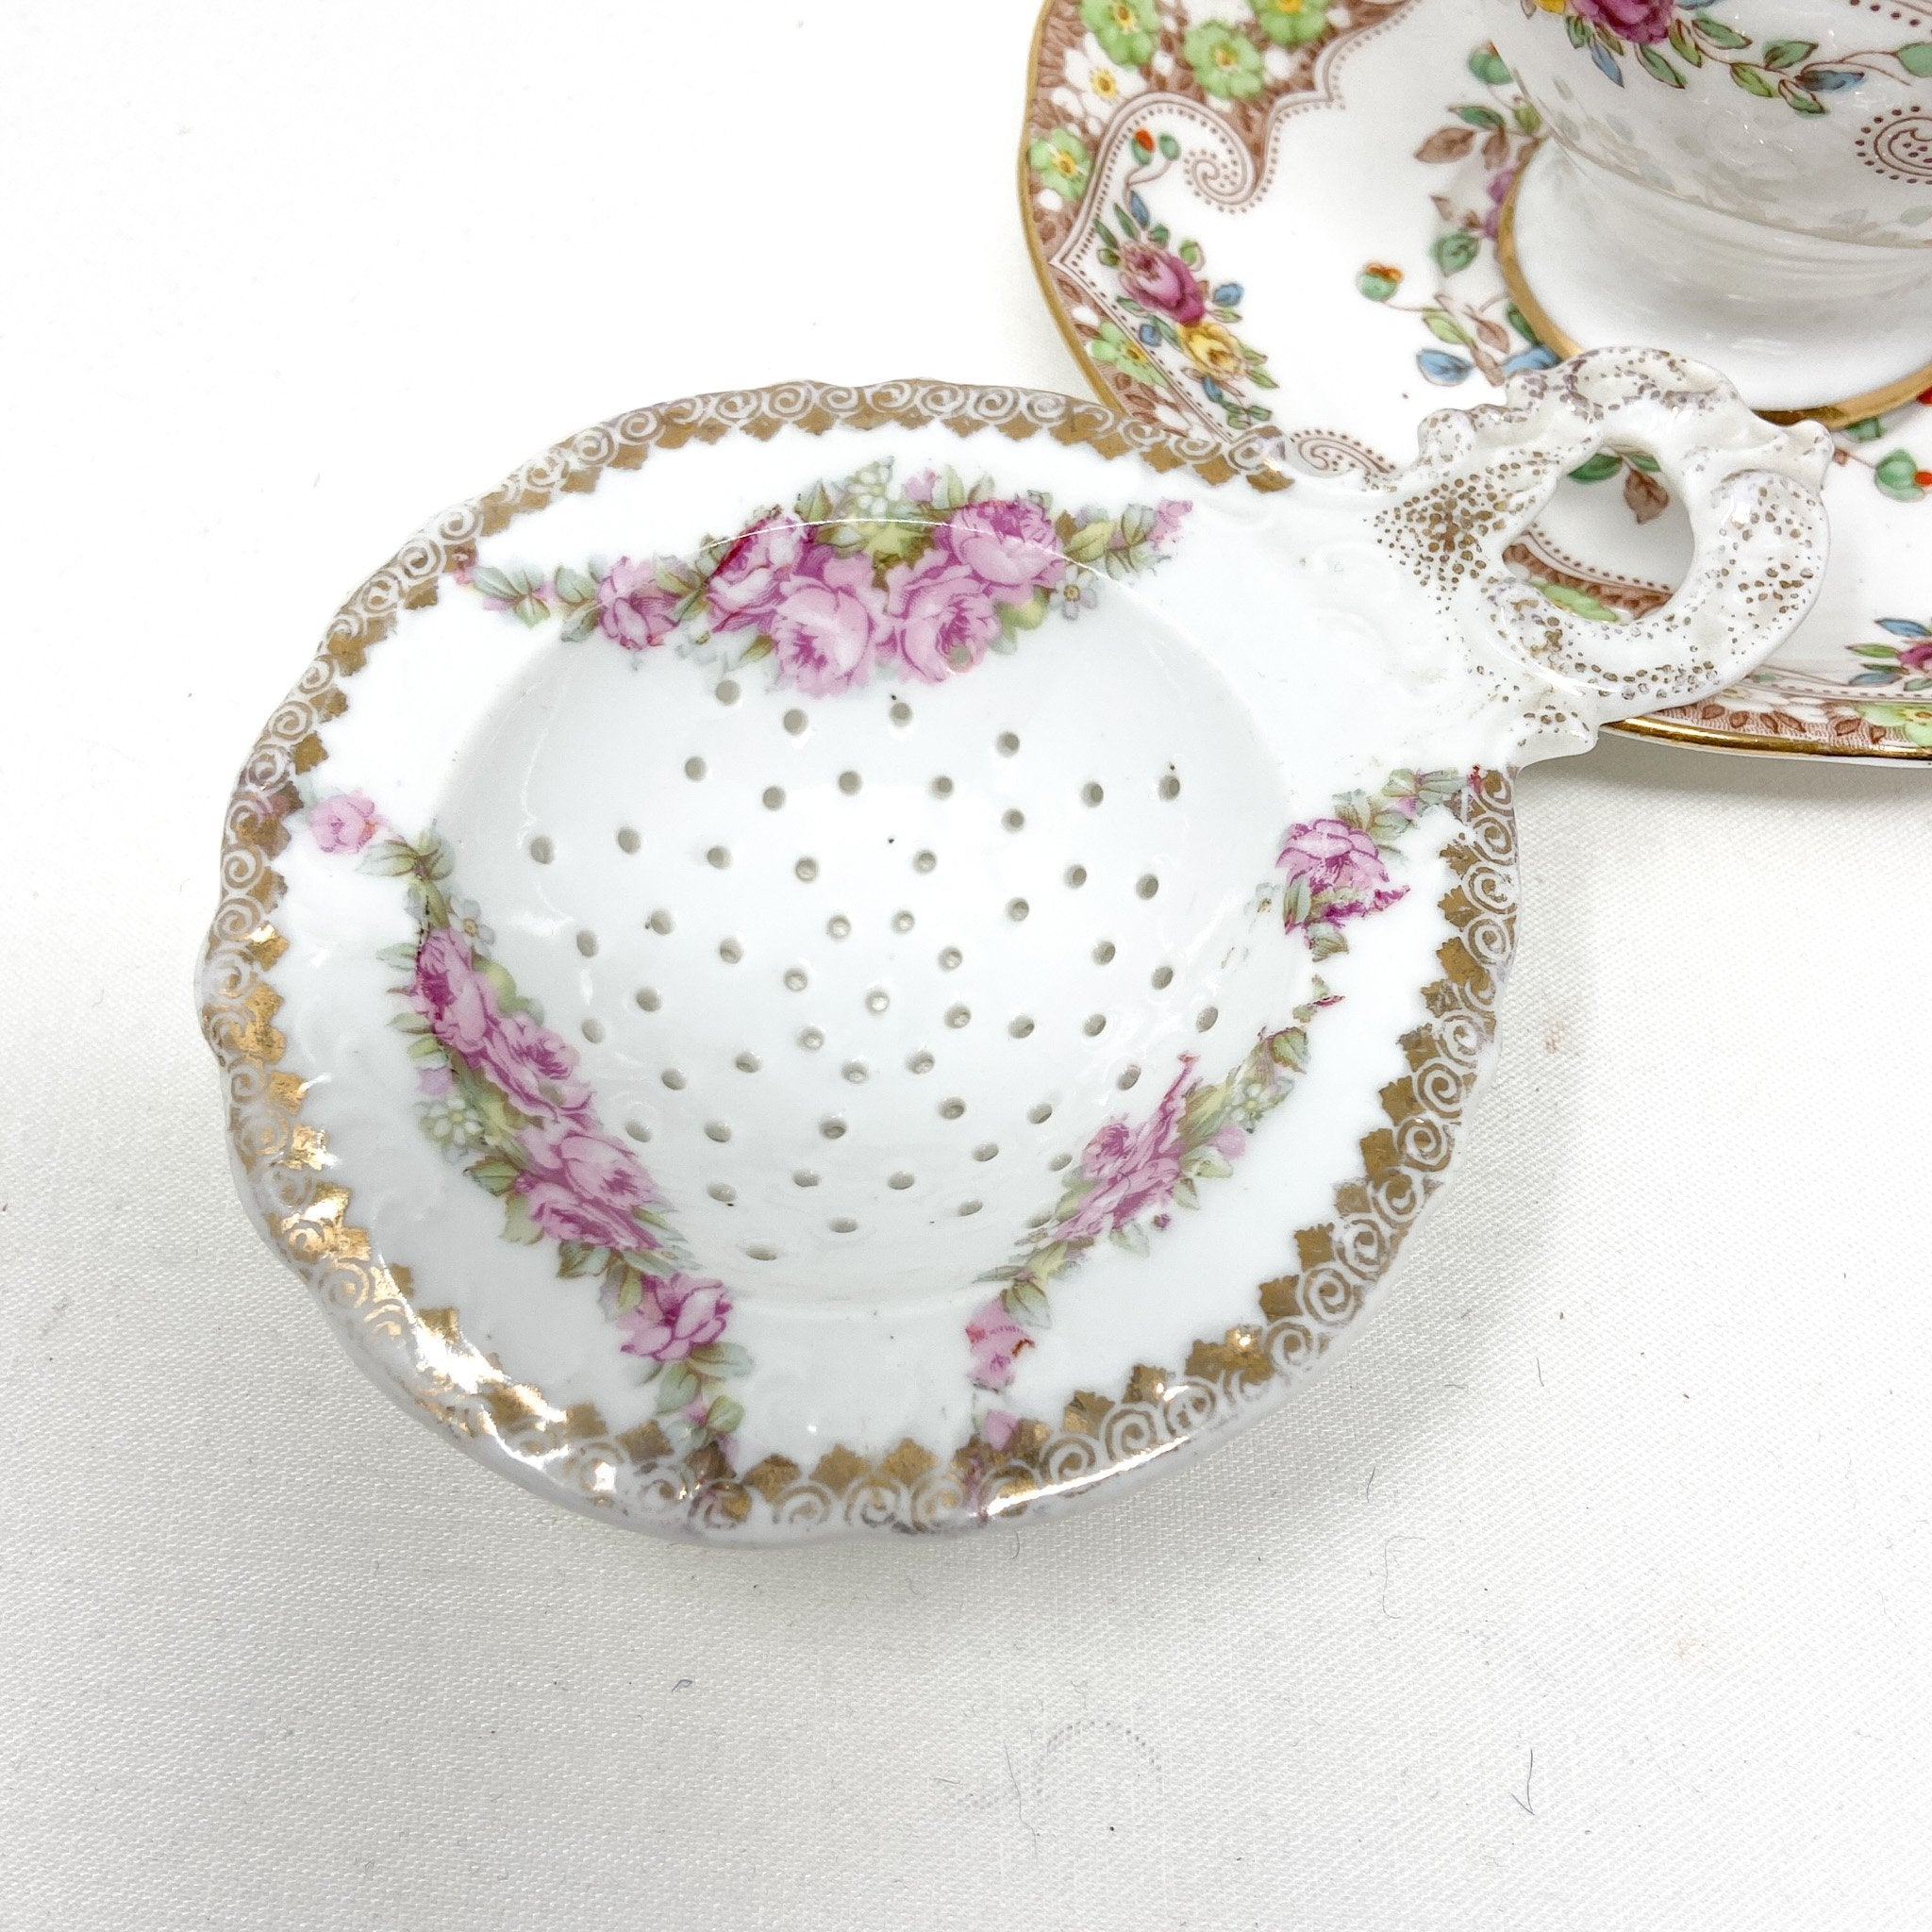 Royal Standard Rosemary | Teacup, Saucer & Strainer | The Brooklyn Teacup - close up of only the strainer with pink roses and gold swirls